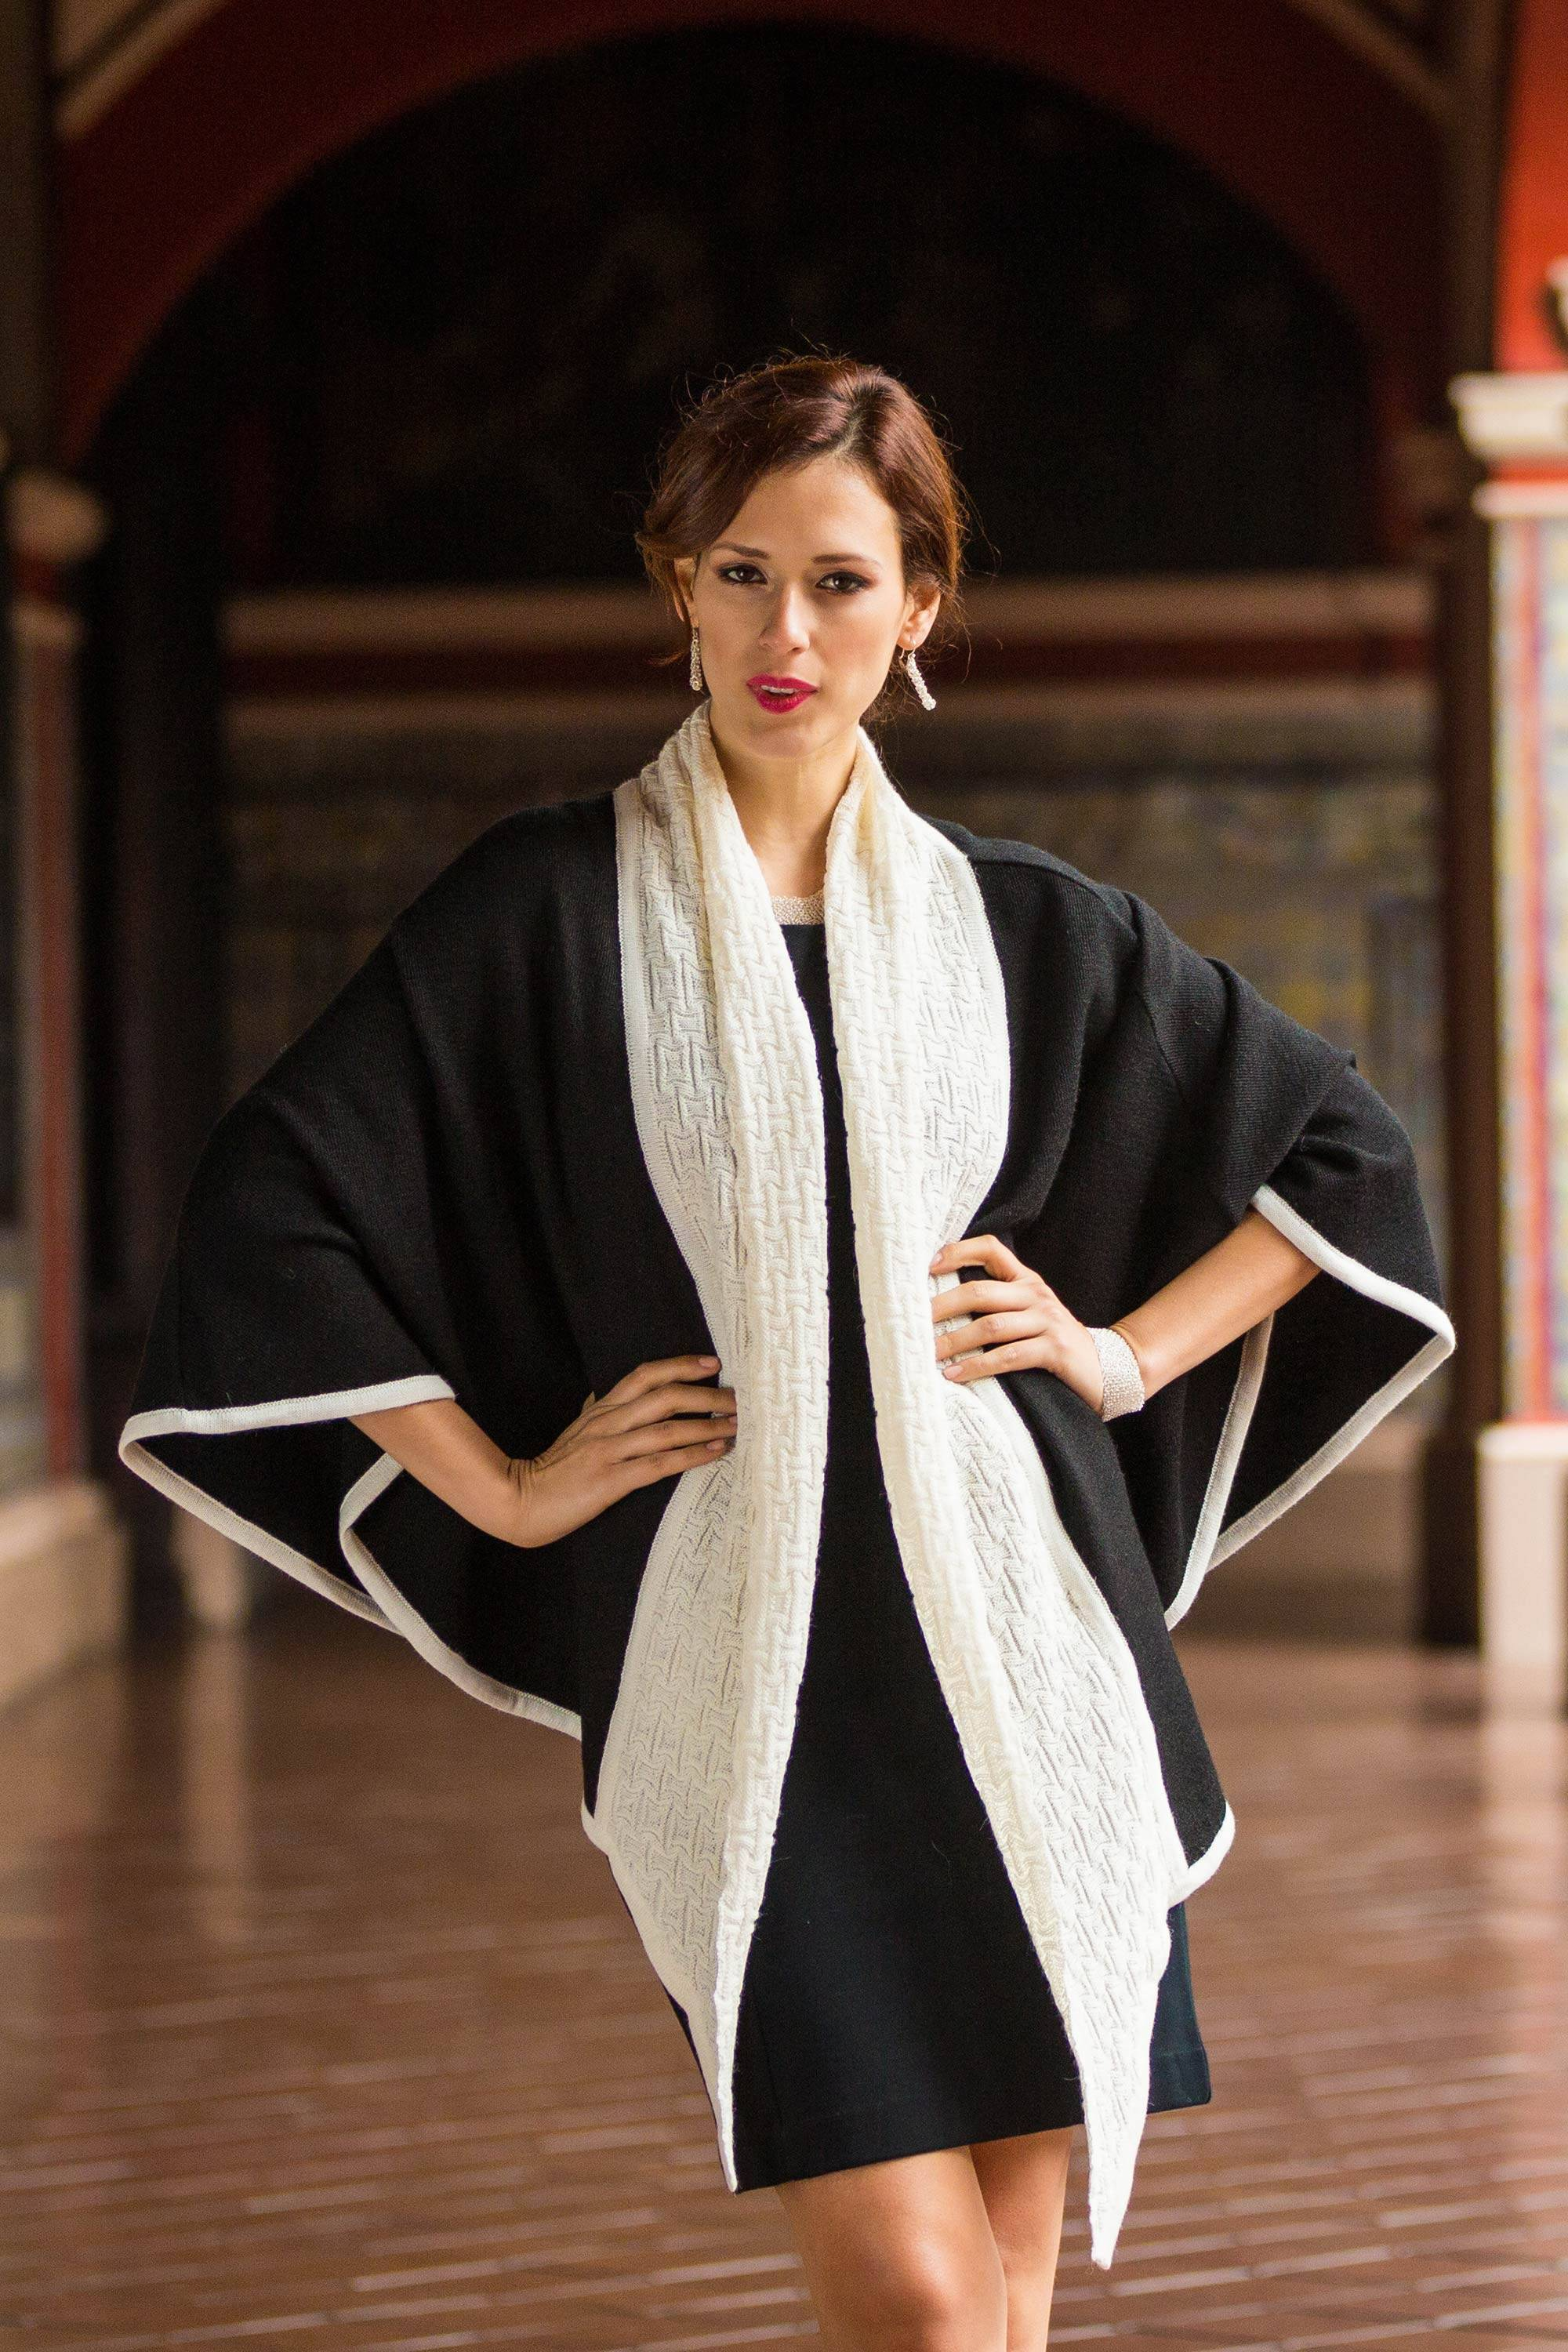 Barranco Eclipse Alpaca Wool Black and White Ruana Unusual and Individual Fashion